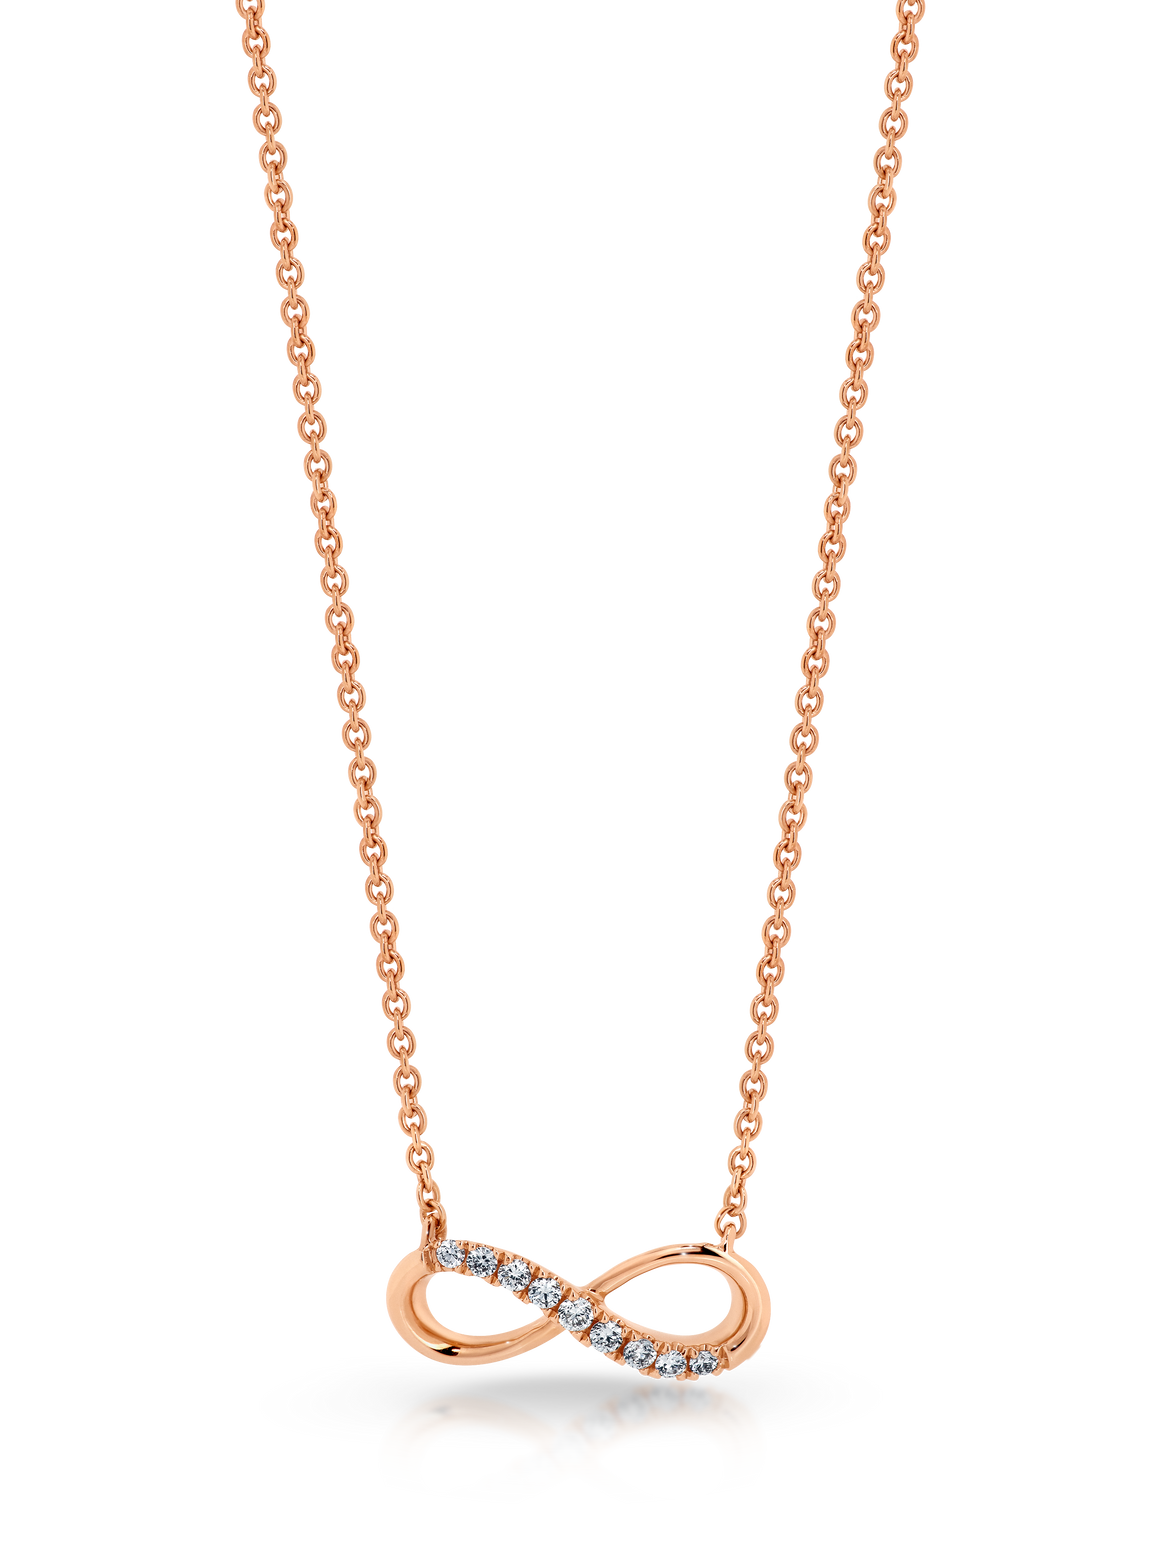 Diamond 'Infinity' Necklace - Gemma Stone  ABN:51 621 127 866